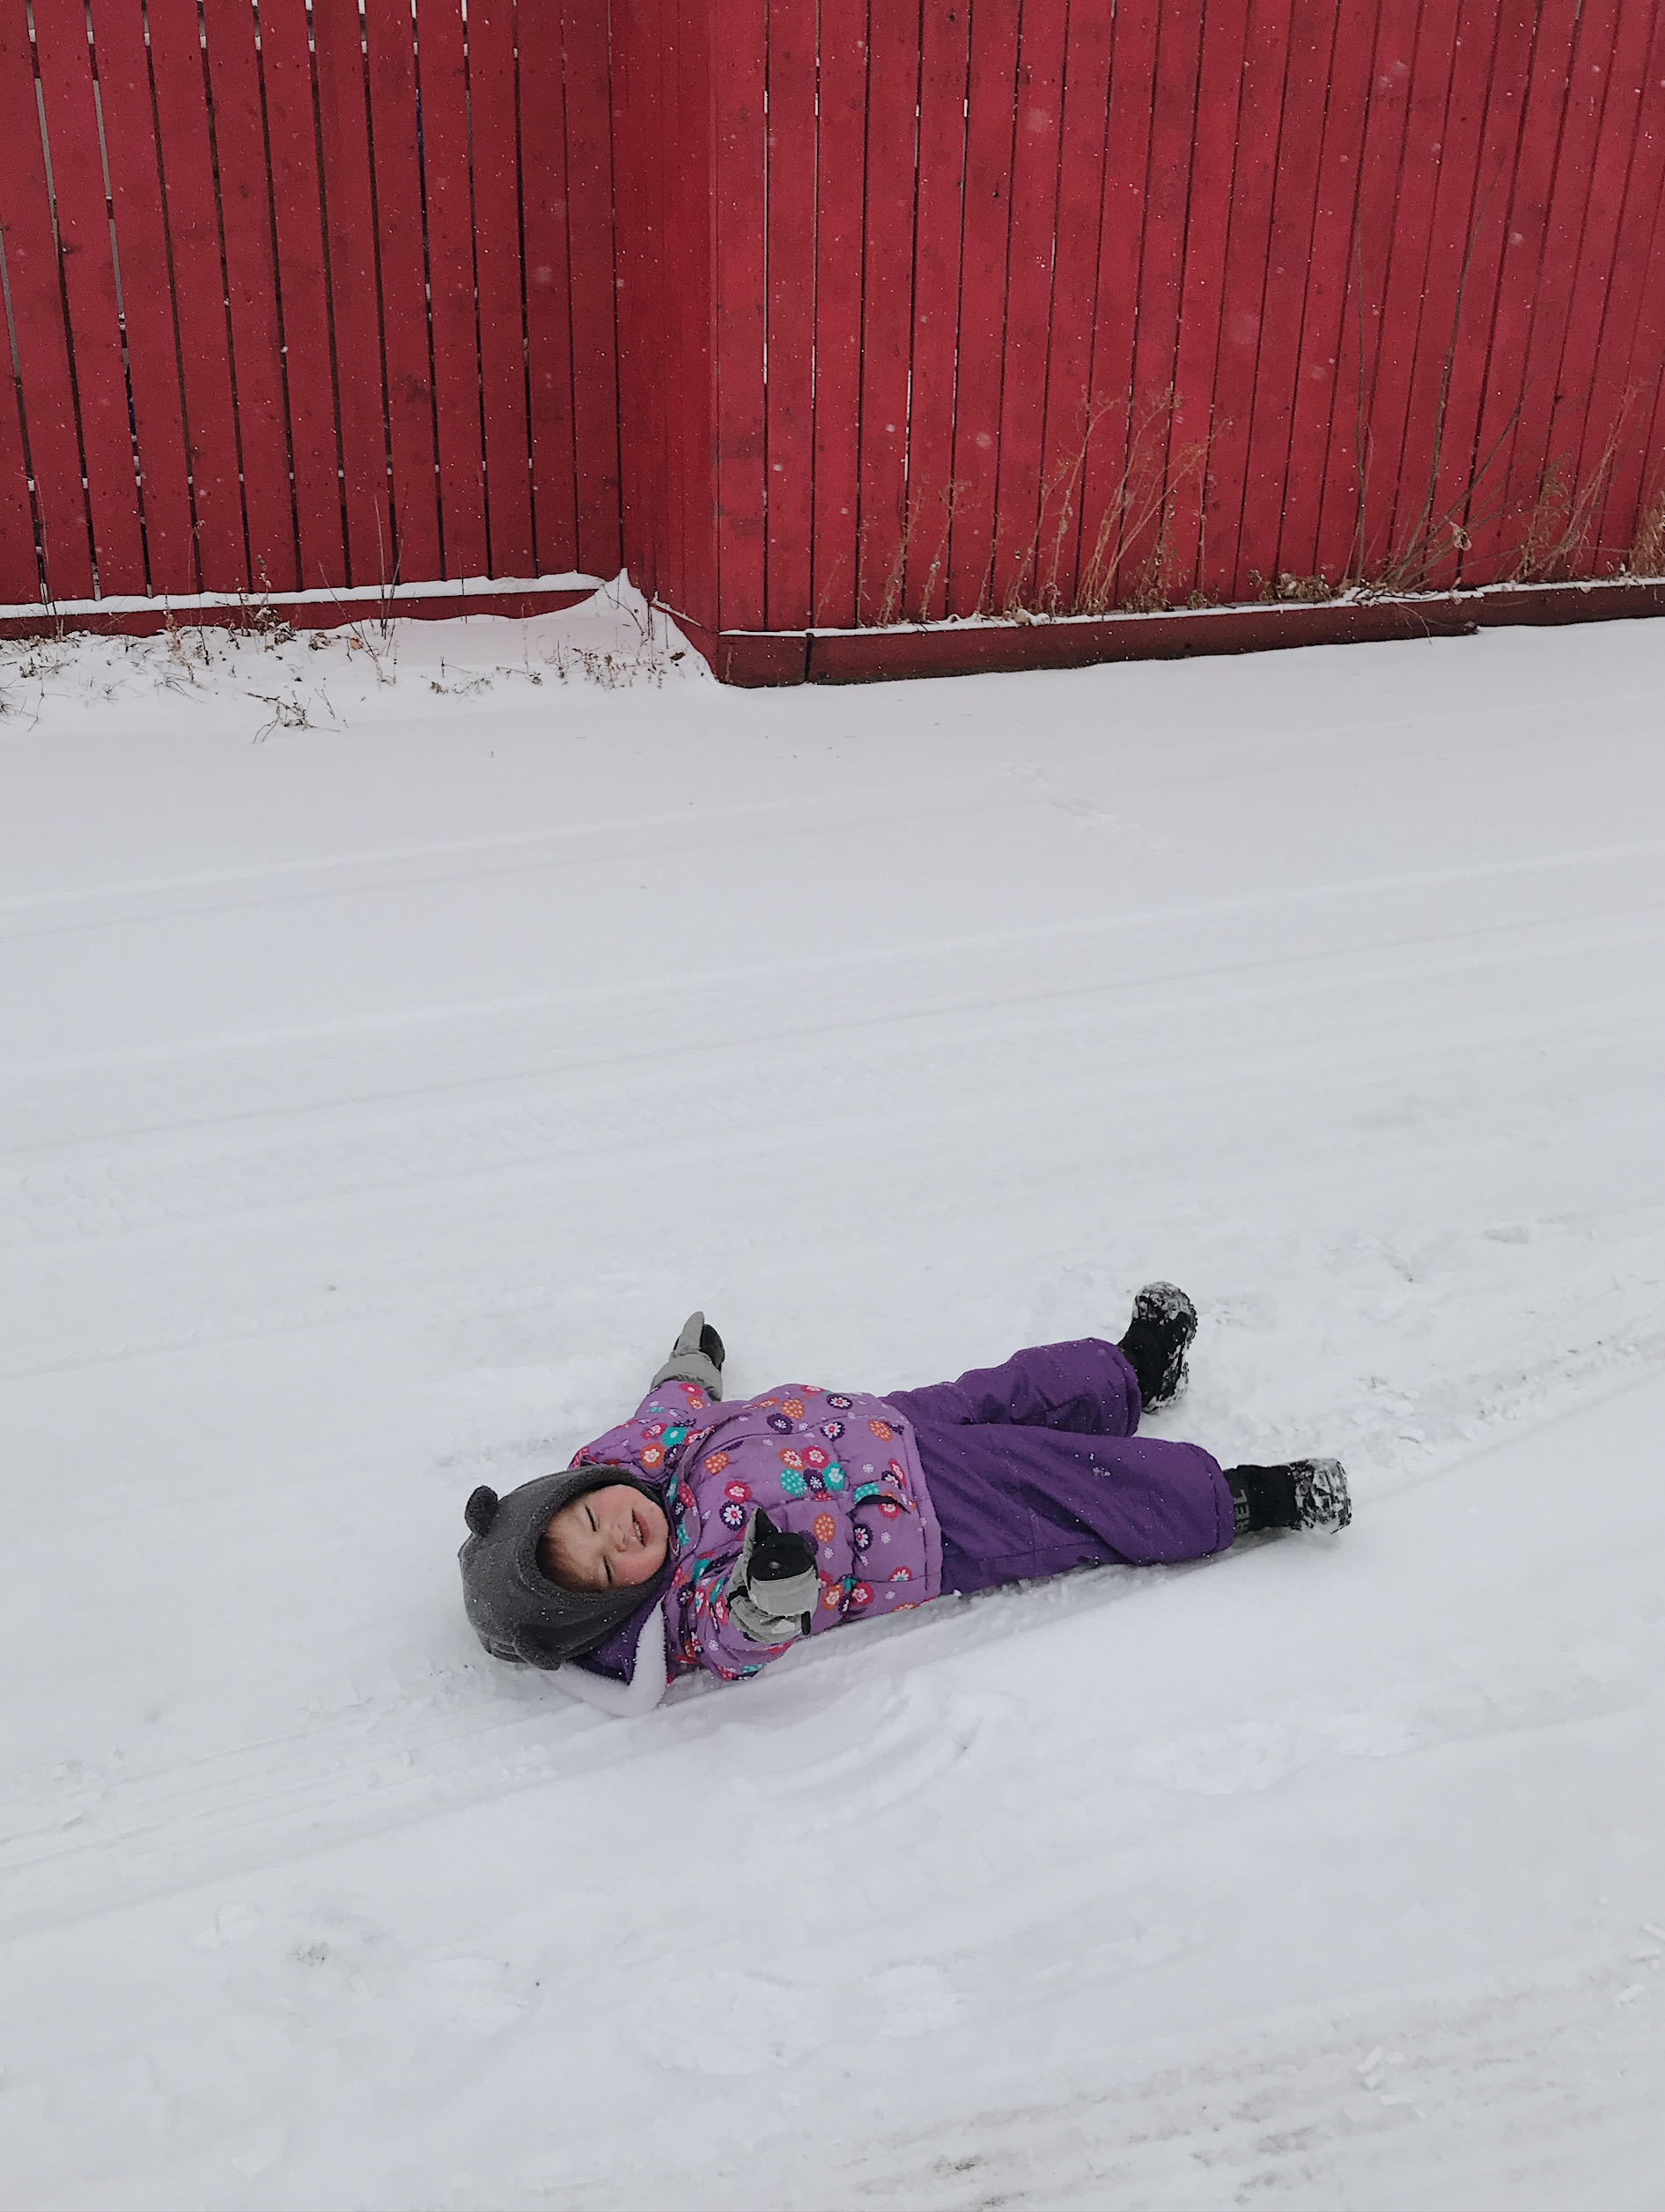 You know the part in Frozen where Olaf the snowman slides down the hill on his stomach? That's all she wants to do.